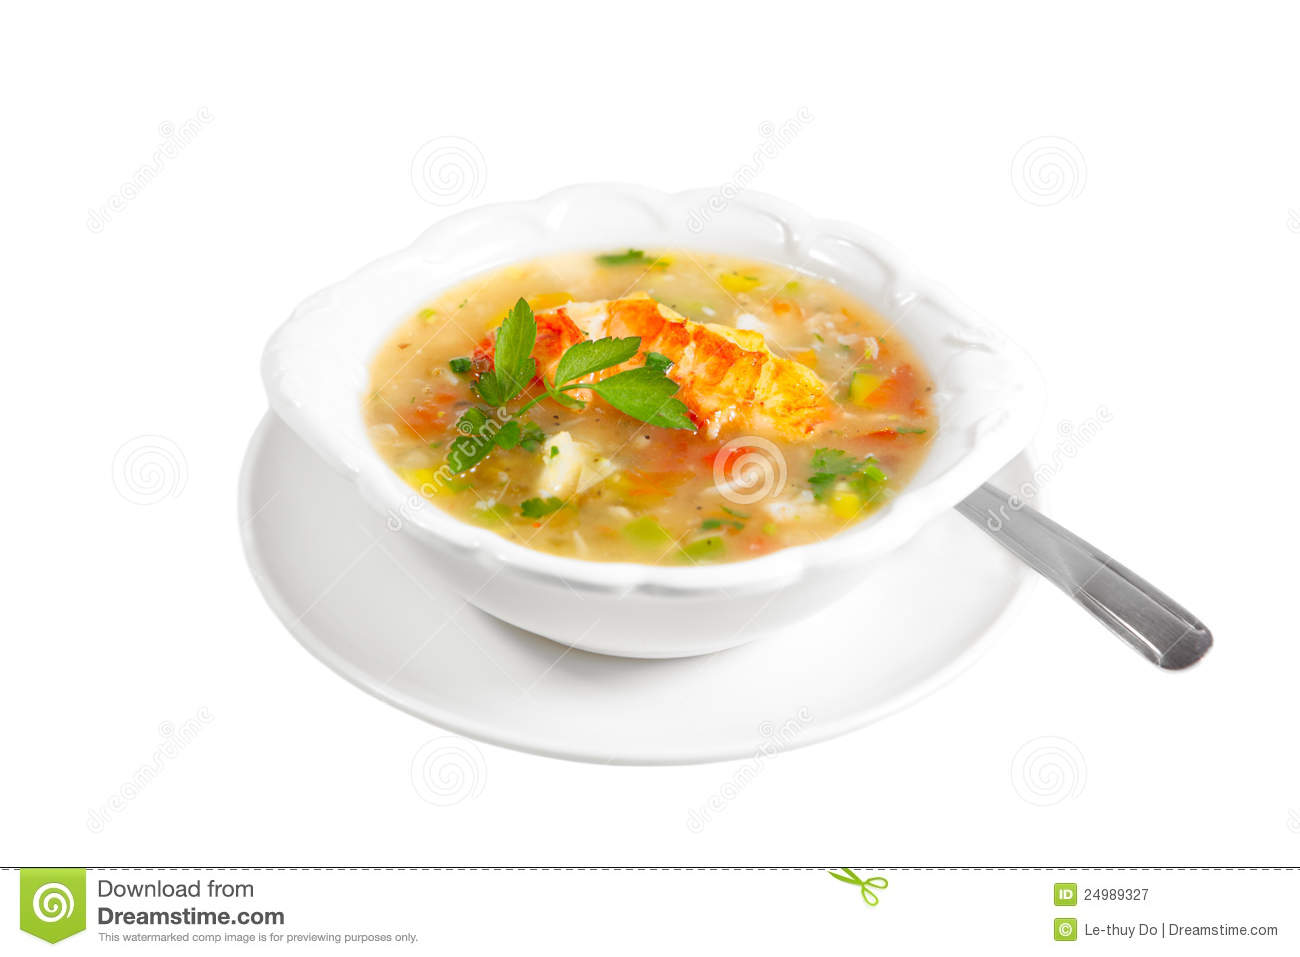 Lobster Chowder Royalty Free Stock Photography - Image: 24989327